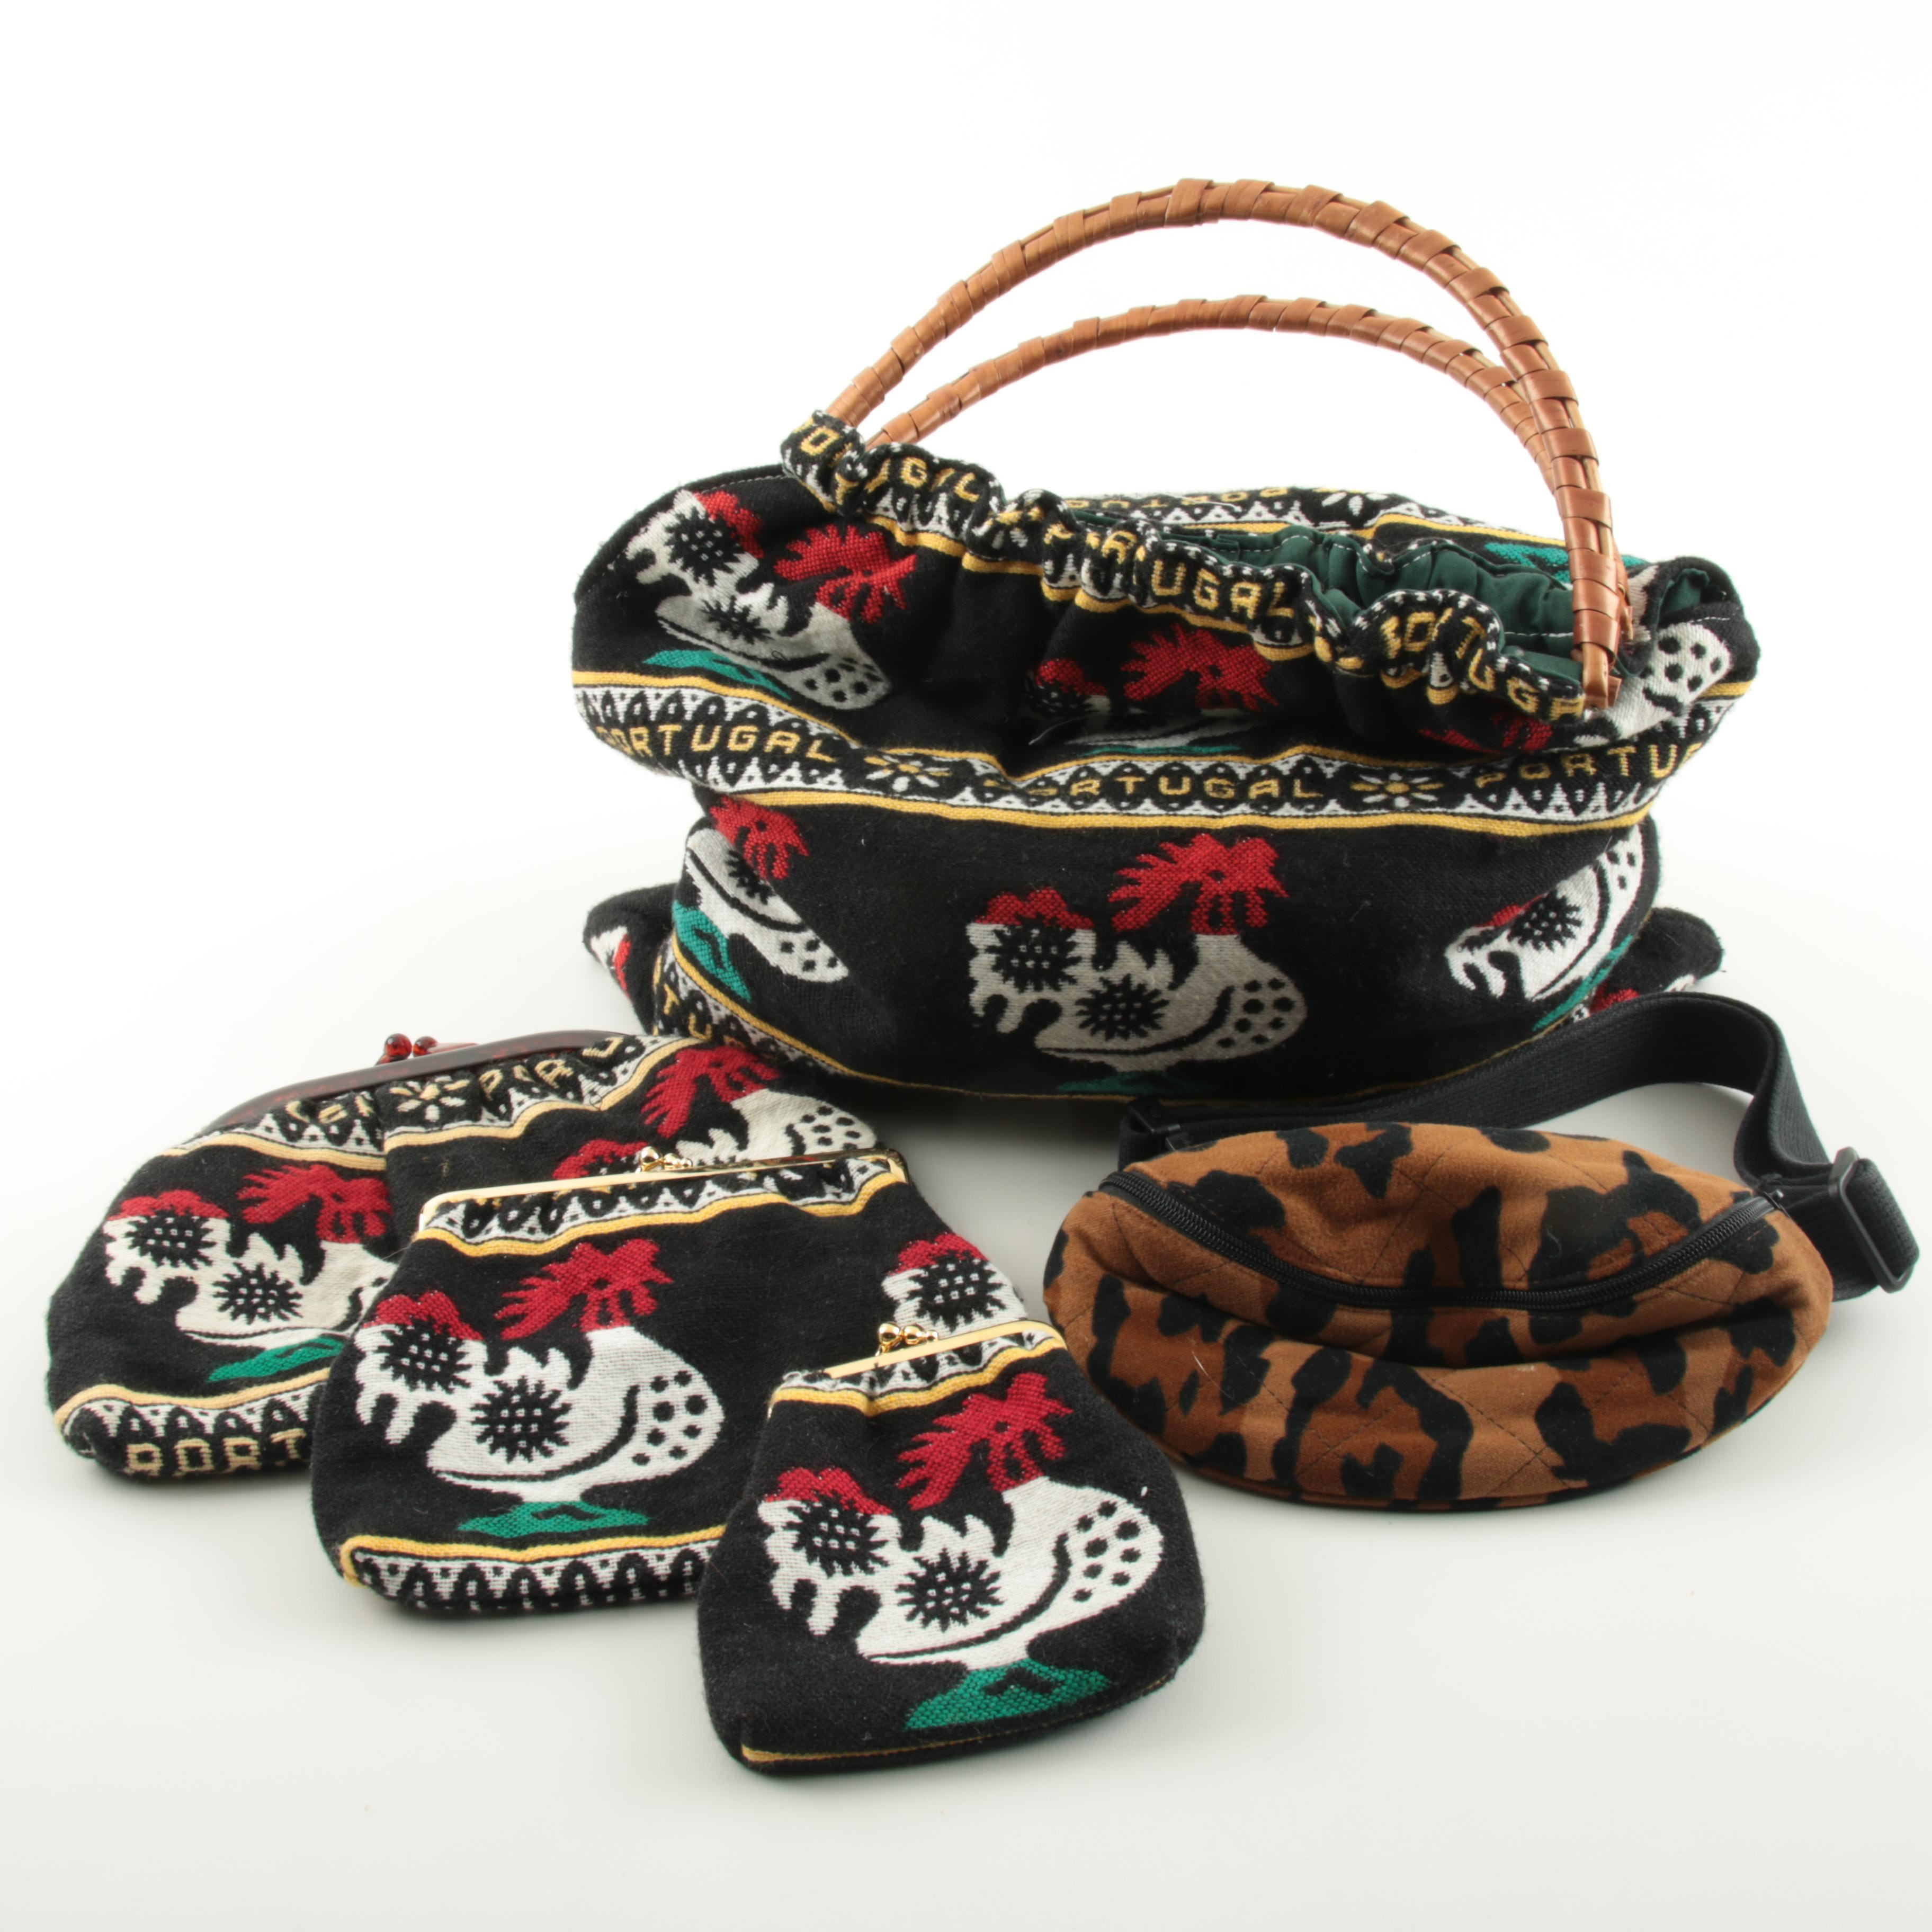 Kenzo Jungle Fanny Pack and Woven Portugal Bags